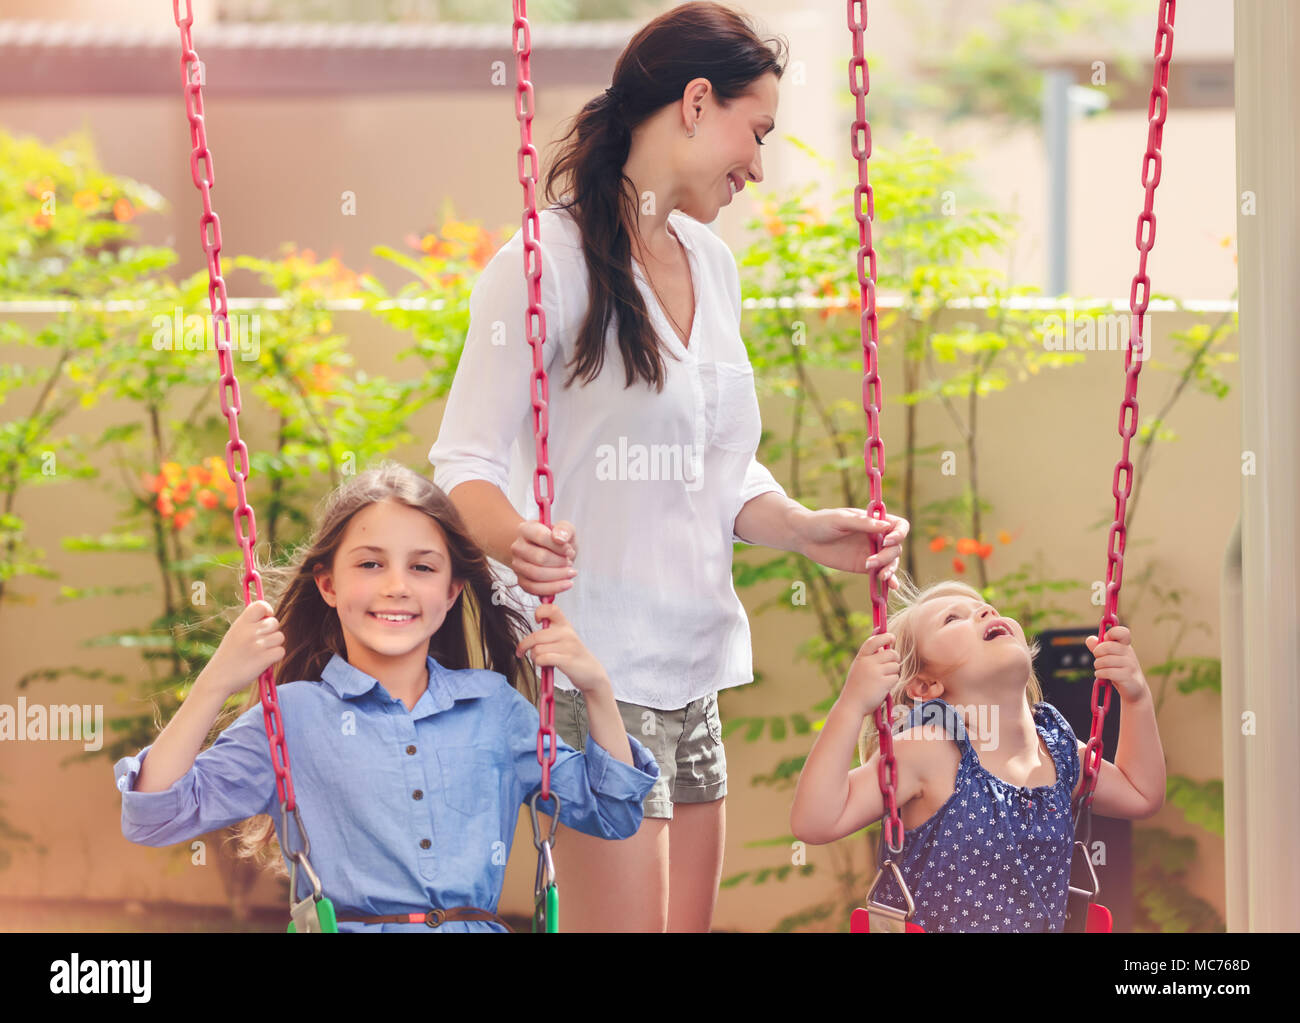 Mother with two daughters on a playground, beautiful young mom rocks her precious girls on the swing, amusement for outdoors kids, happy family spendi - Stock Image